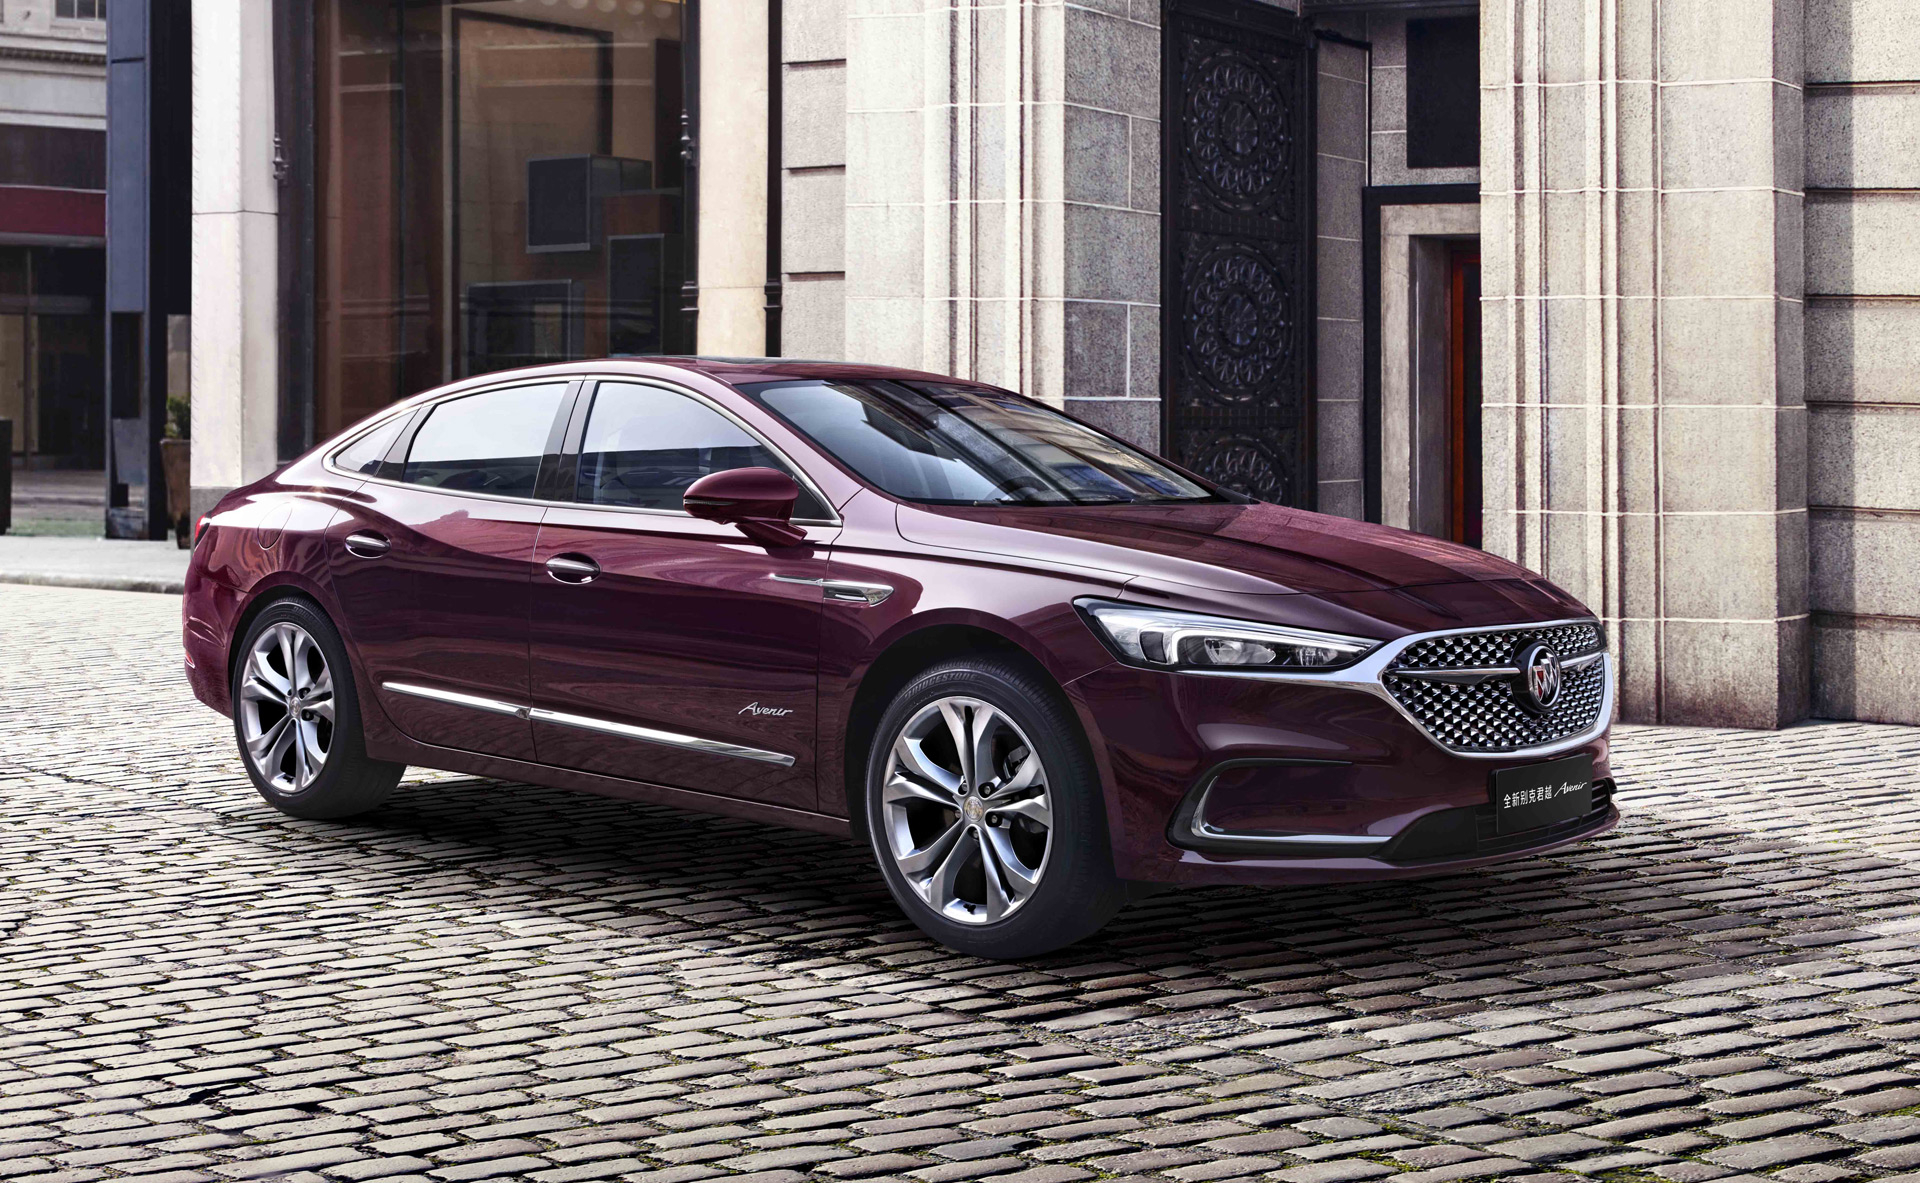 2020 Buick Lacrosse Made Handsome Just As It's Dropped In Us Show Me The 2022 Buick Lacrosse